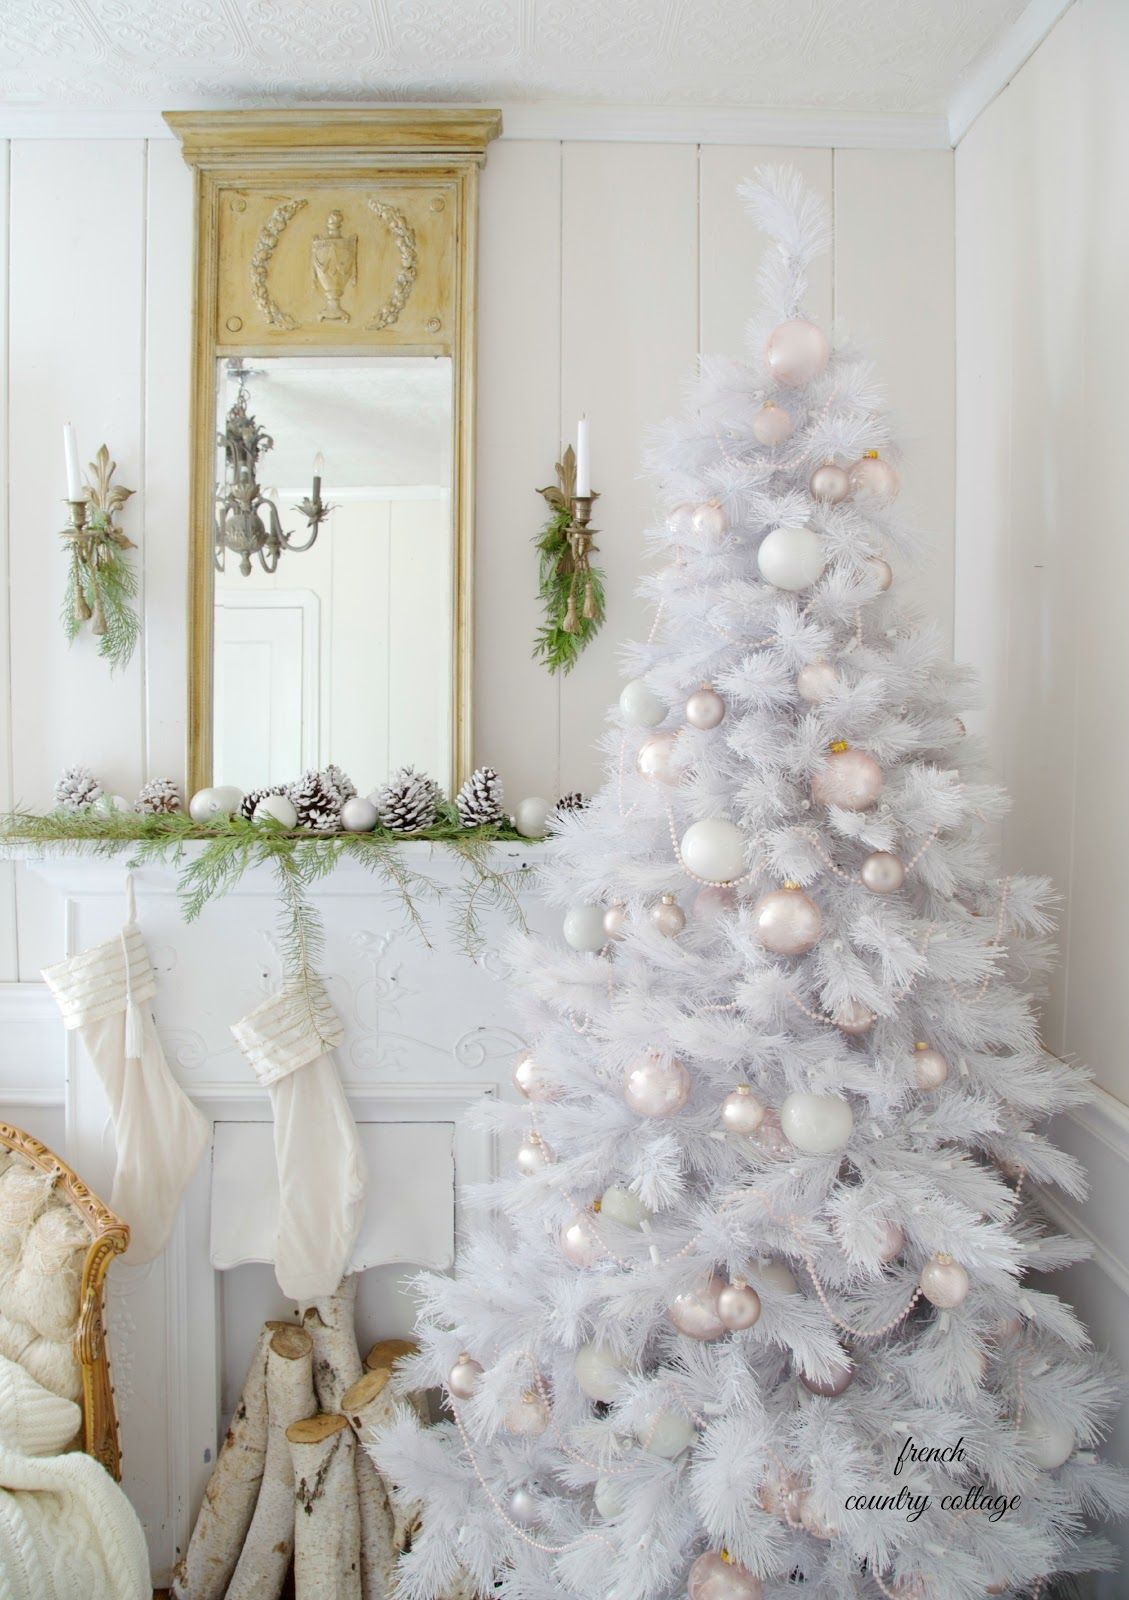 How To Make A White Christmas Tree The Centerpiece Of Your Holiday Decor